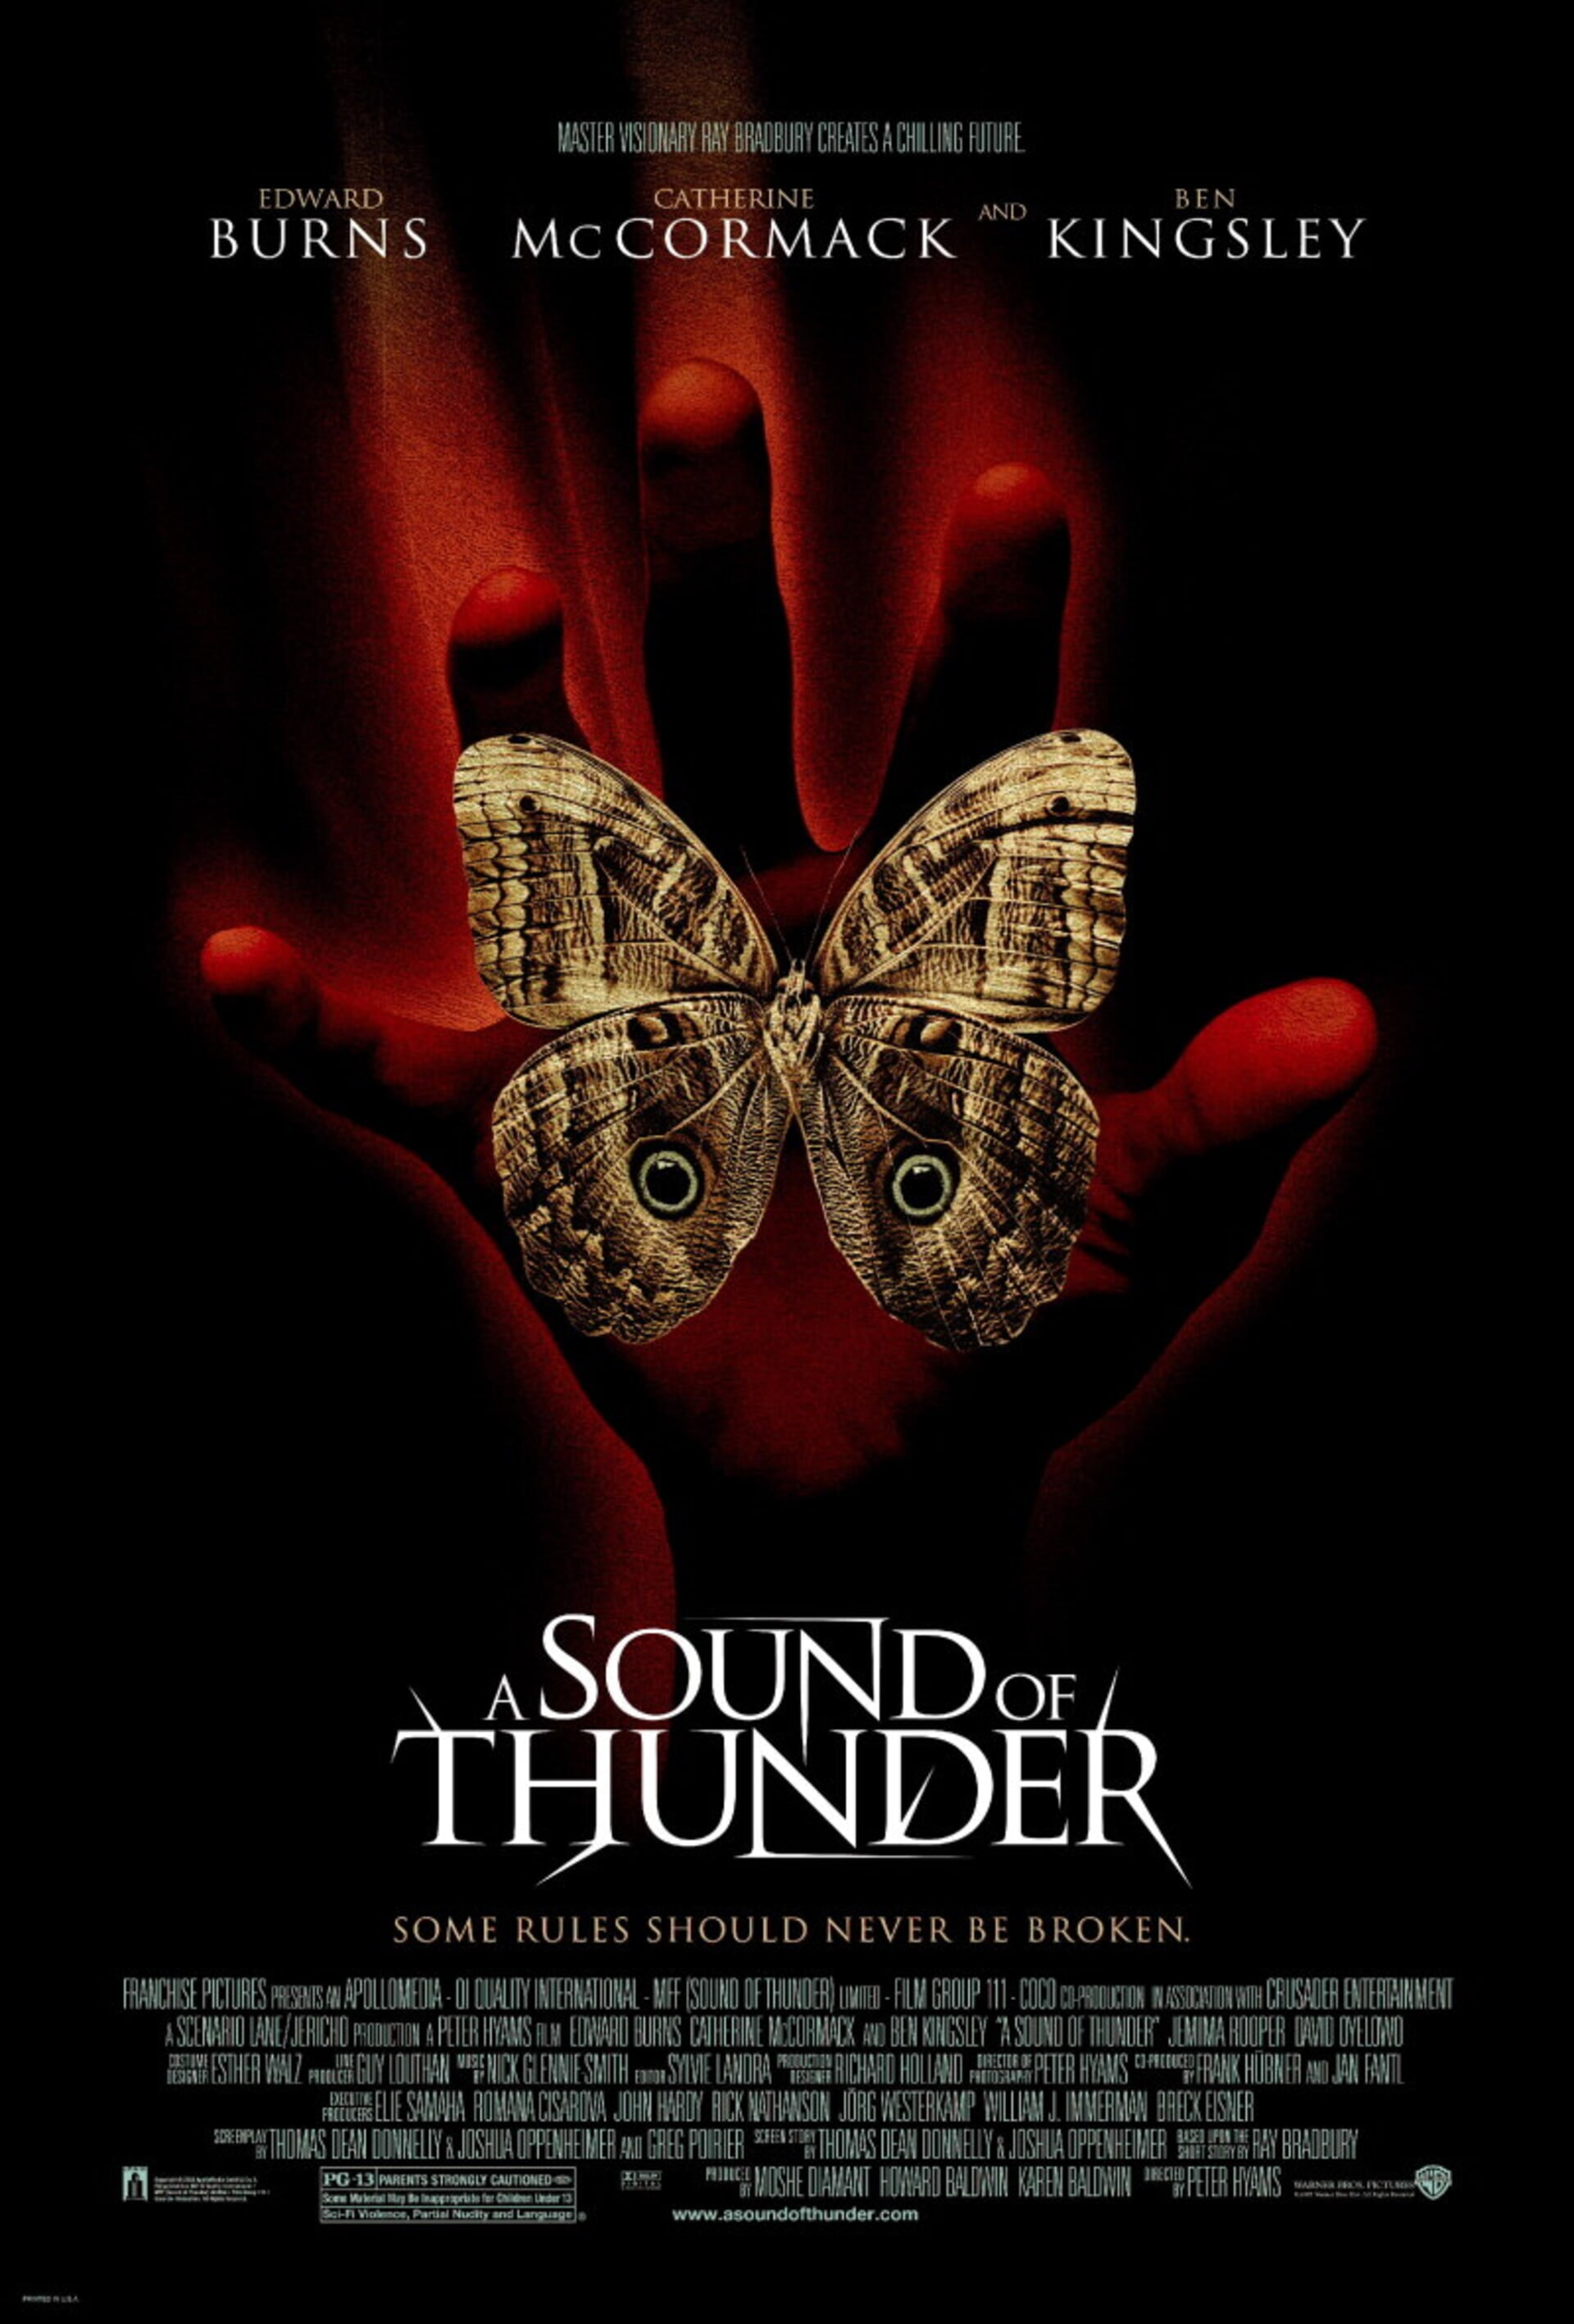 A Sound of Thunder - Poster 1